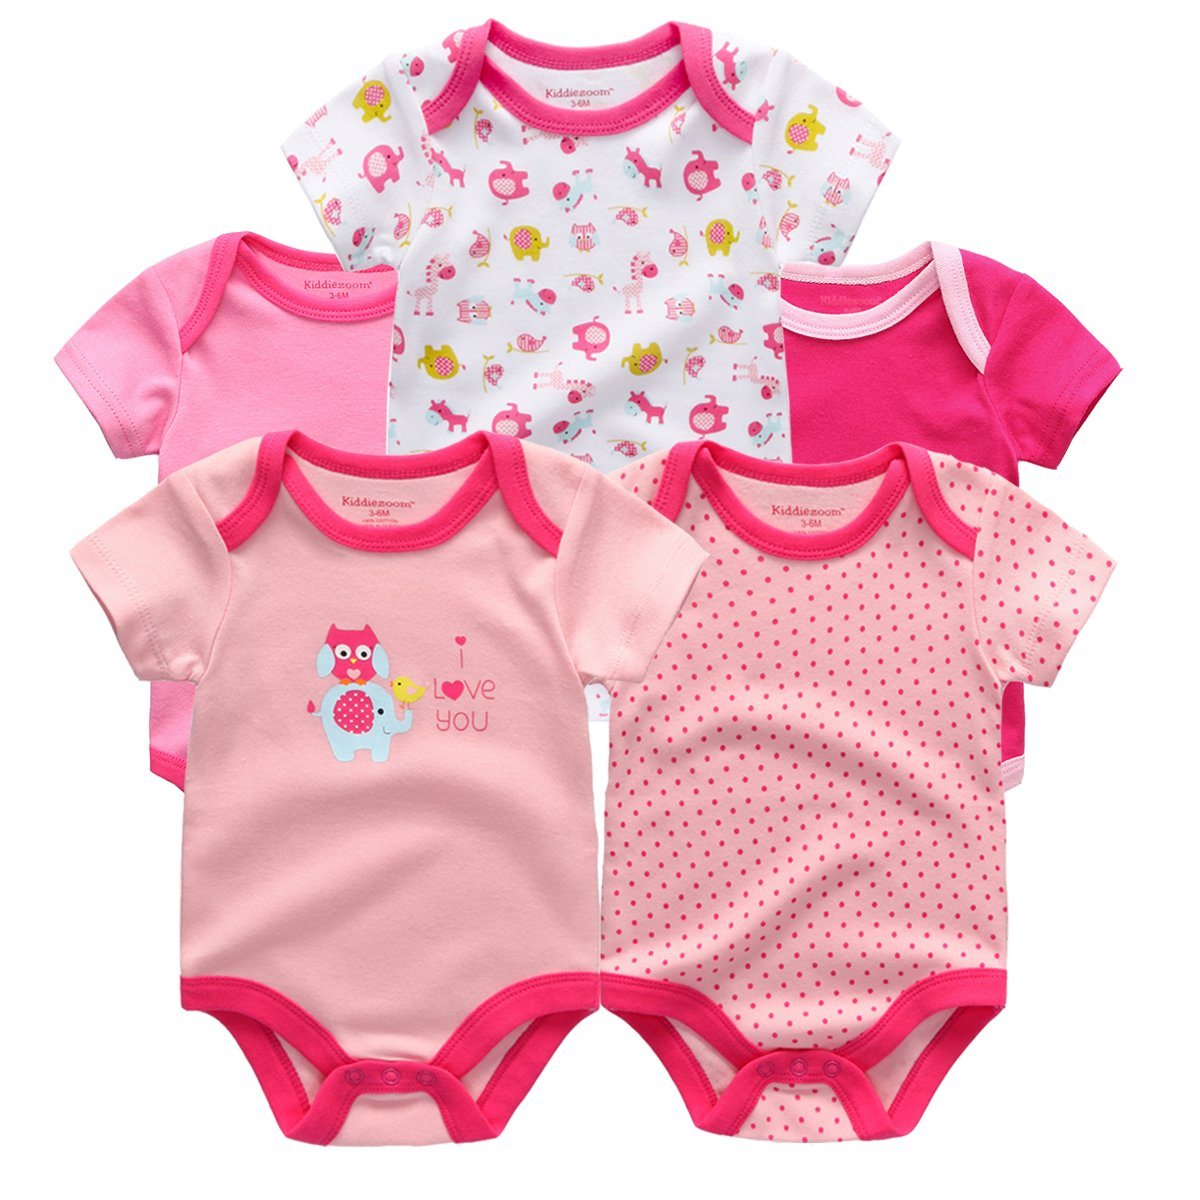 0caf366bbd3d9 Kiddiezoom 100%Cotton Baby Boys Girls Clothes Short Sleeve O-neck 5 Packs  Baby Romper Set